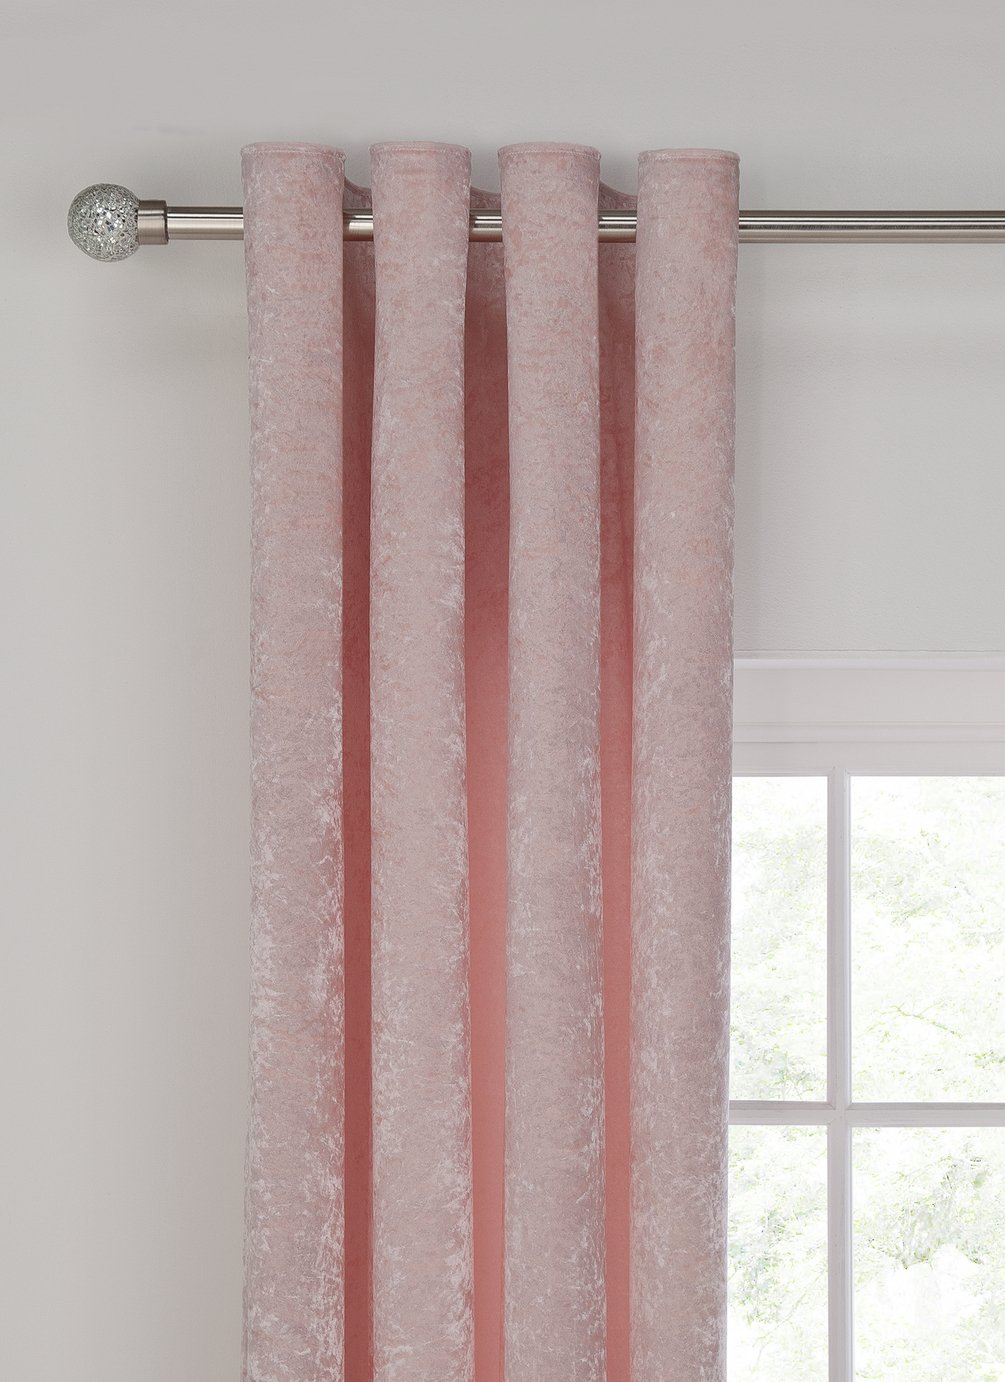 Argos Home Velvet Lined Eyelet Curtain - 168x229cm  - Blush